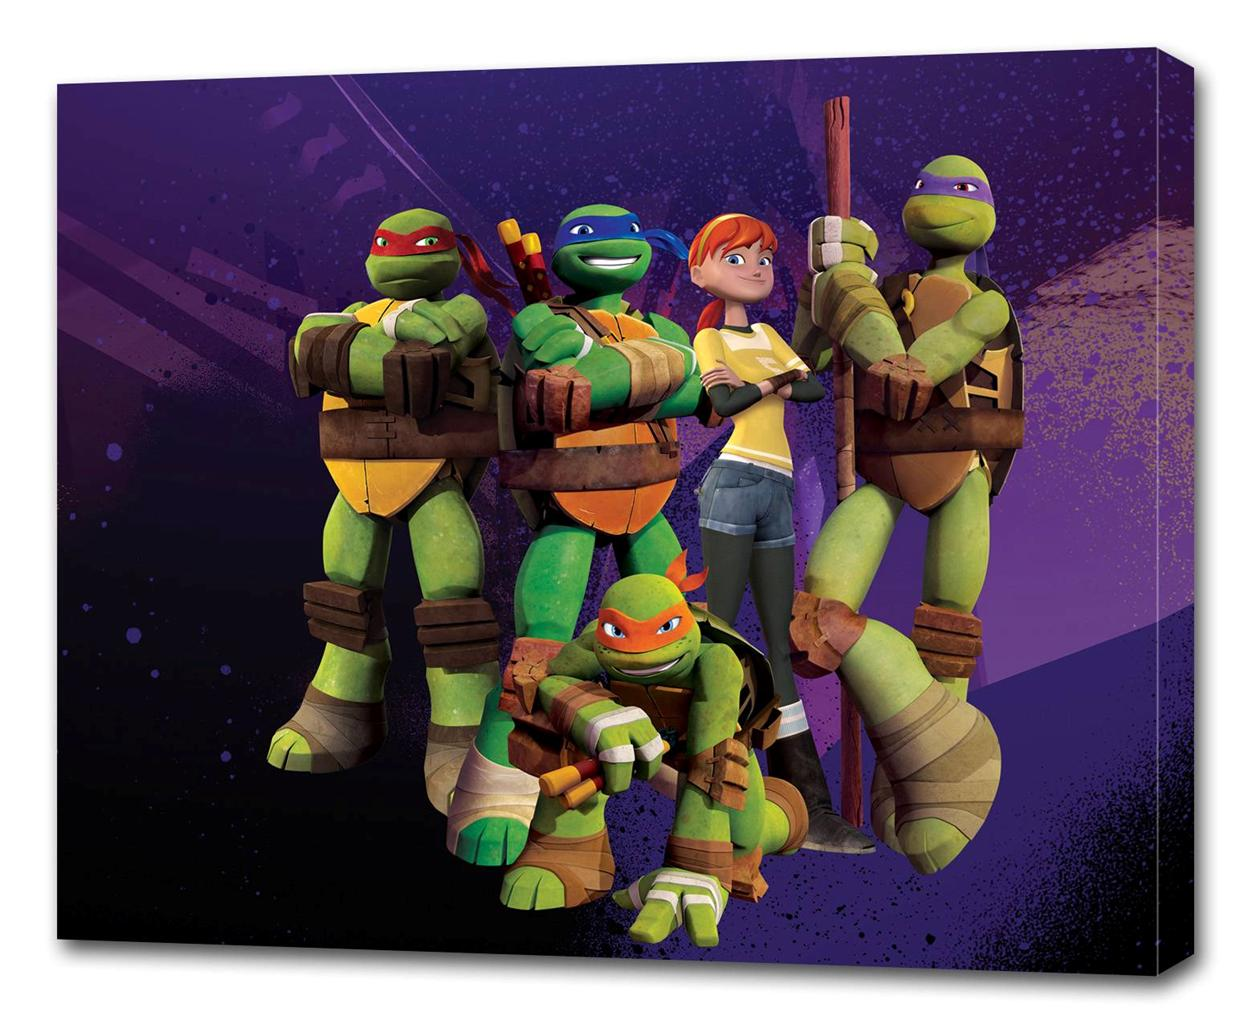 Ninja Turtle Wall Decor tmnt ninja turtles canvas print wall decor art giclee kids bedroom